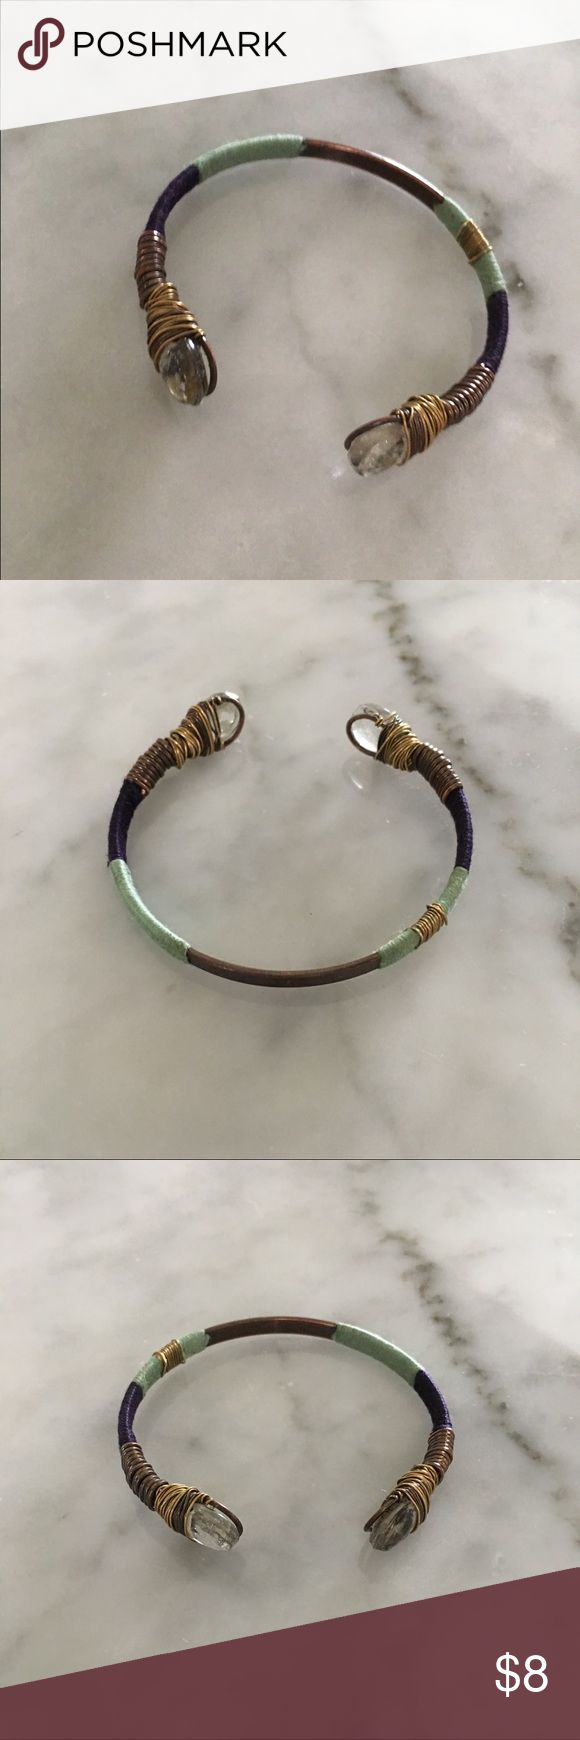 Noonday Collection Festival Bracelet Noonday Collection Festival Bracelet  Used condition Clear beads Mixed metal Blue Green wrapped thread Lightweight Easily shaped to your wrist Jewelry Bracelets